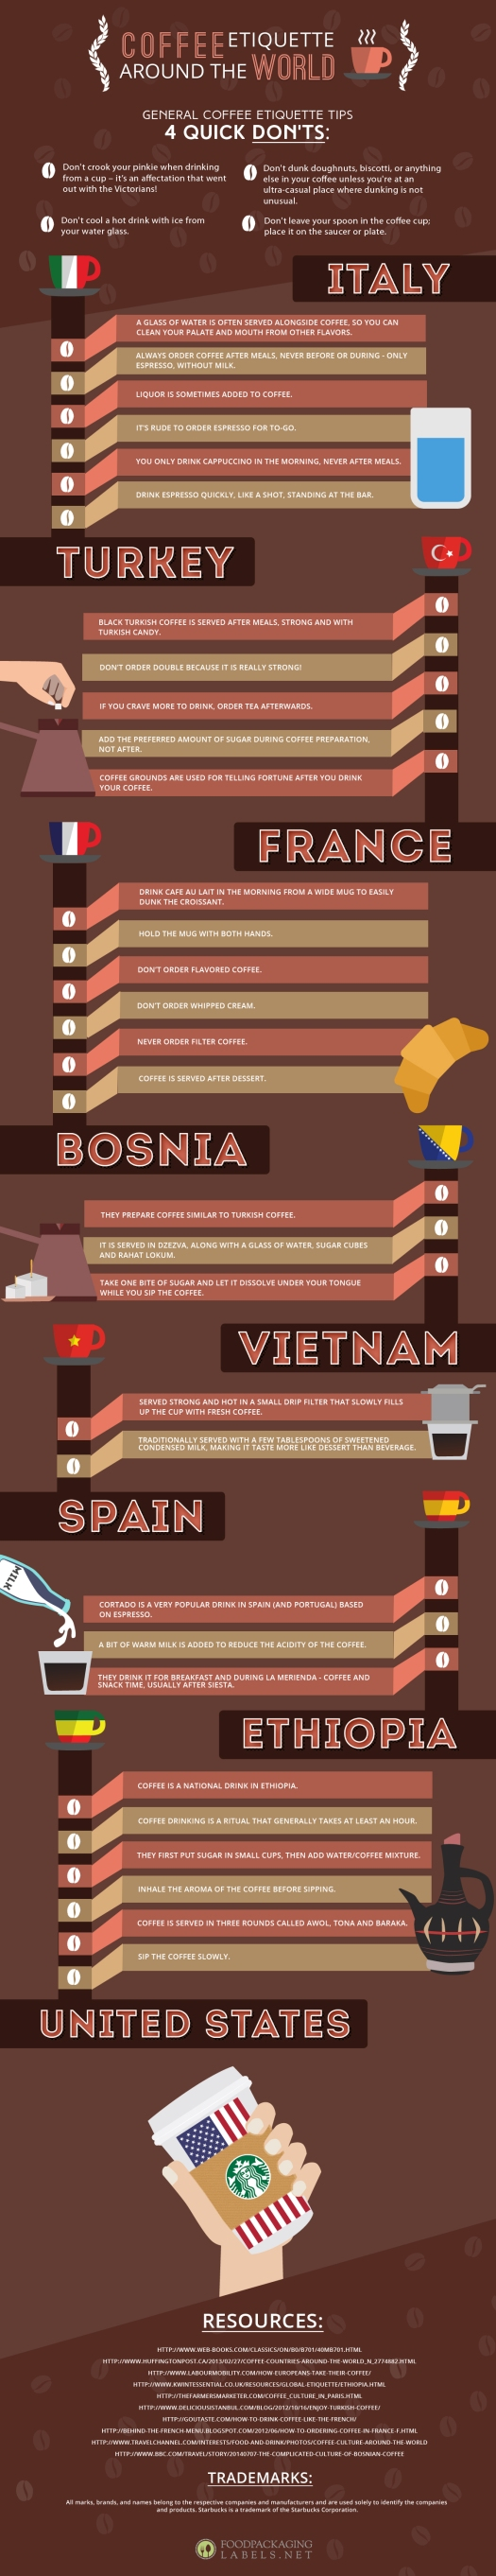 coffee-etiquette-infographic